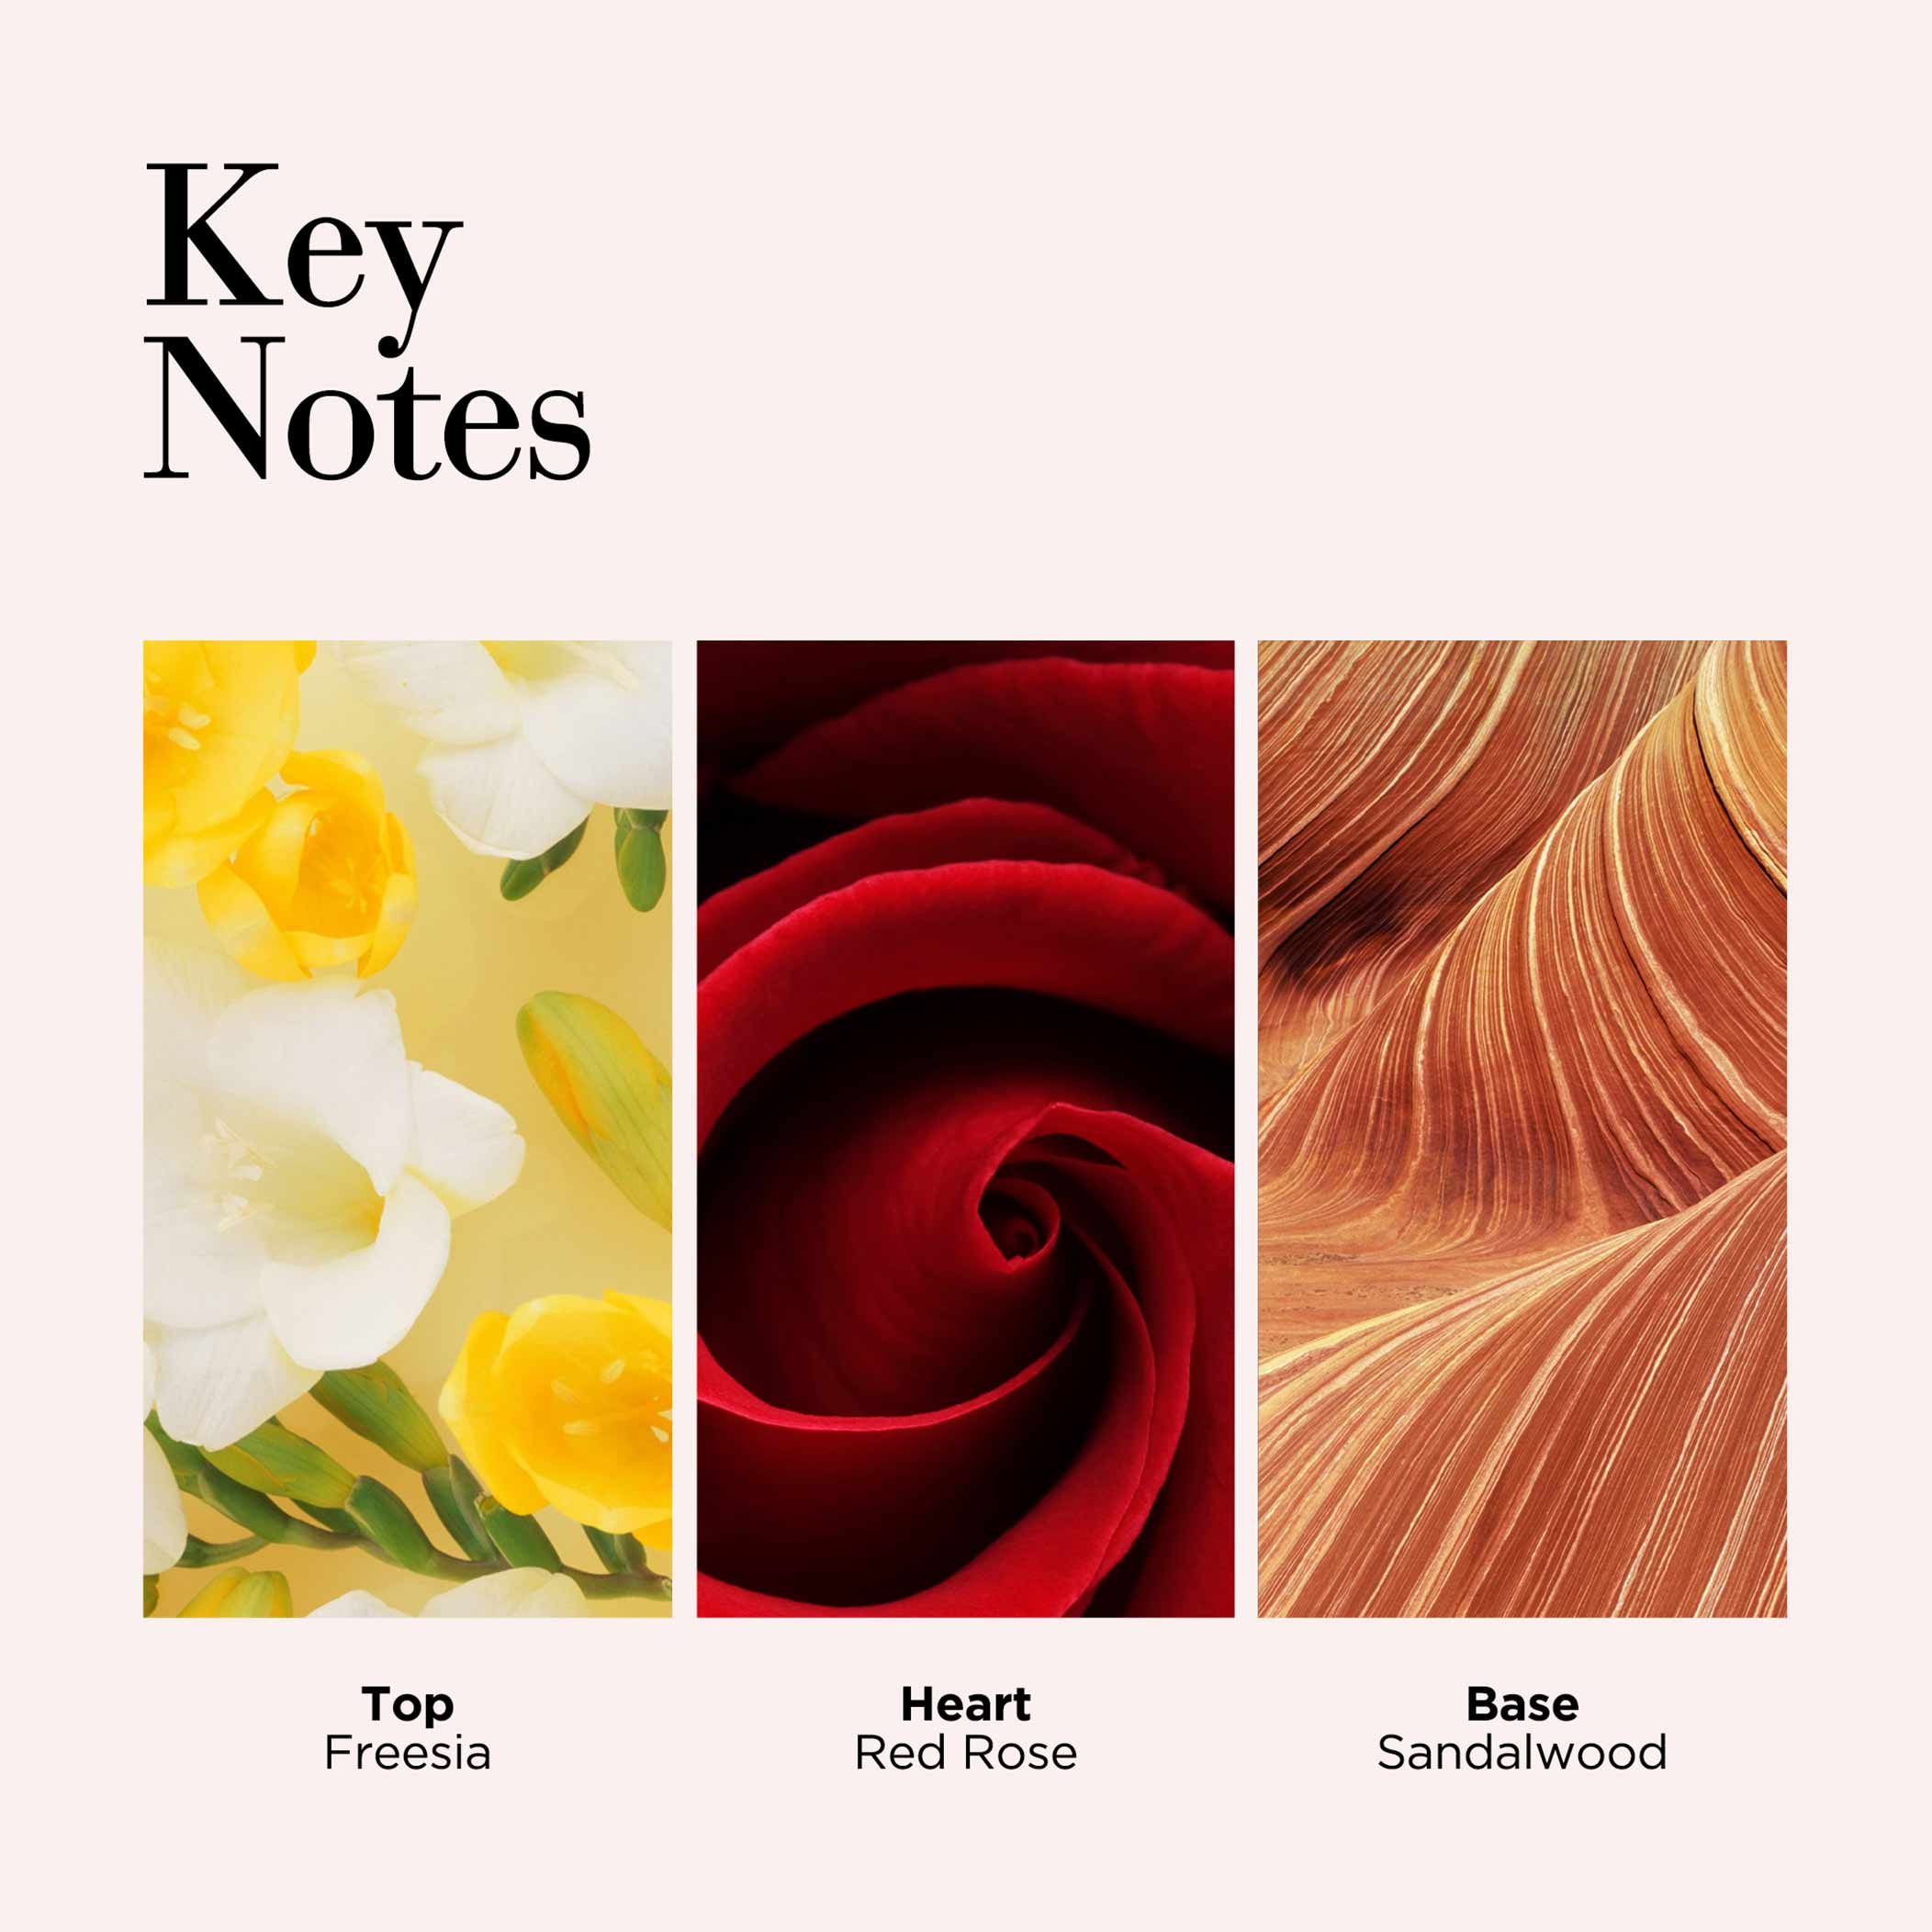 Key Notes- Top Freesia, Mid Red Rose, Base Sandalwood